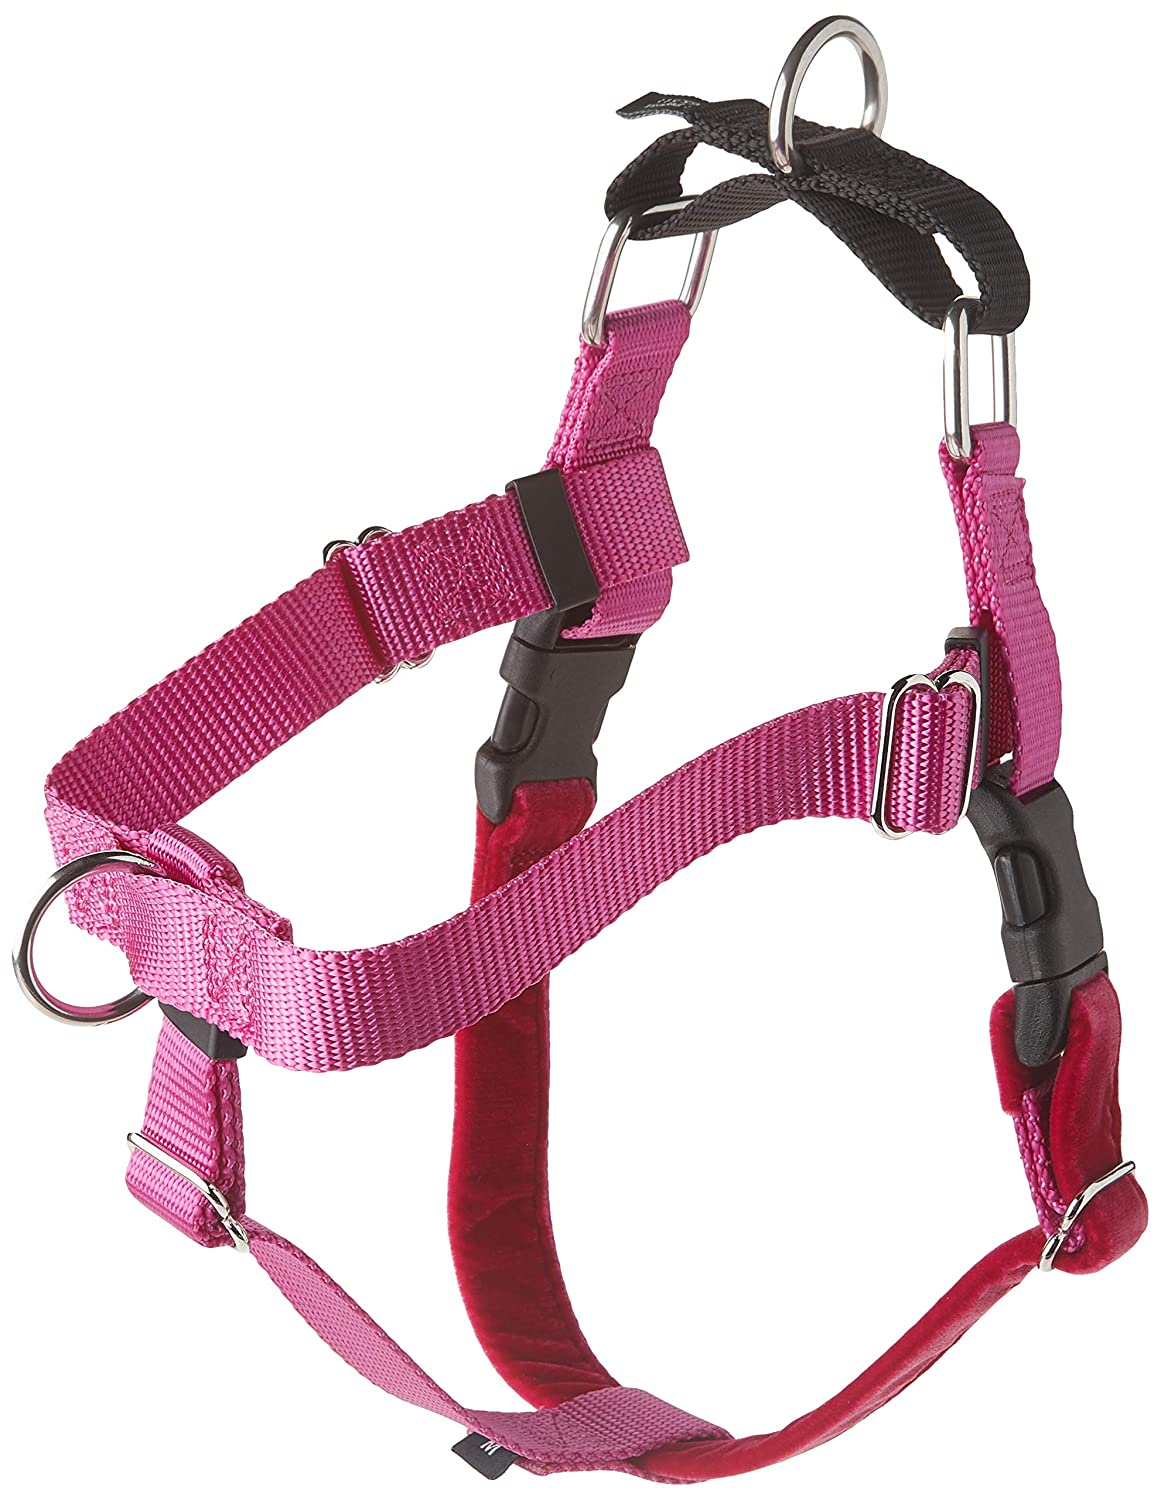 Raspberry Medium2 Hounds Design Freedom NoPull Dog Harness Training Package with Leash, Royal bluee, Large (1Inch Wide)